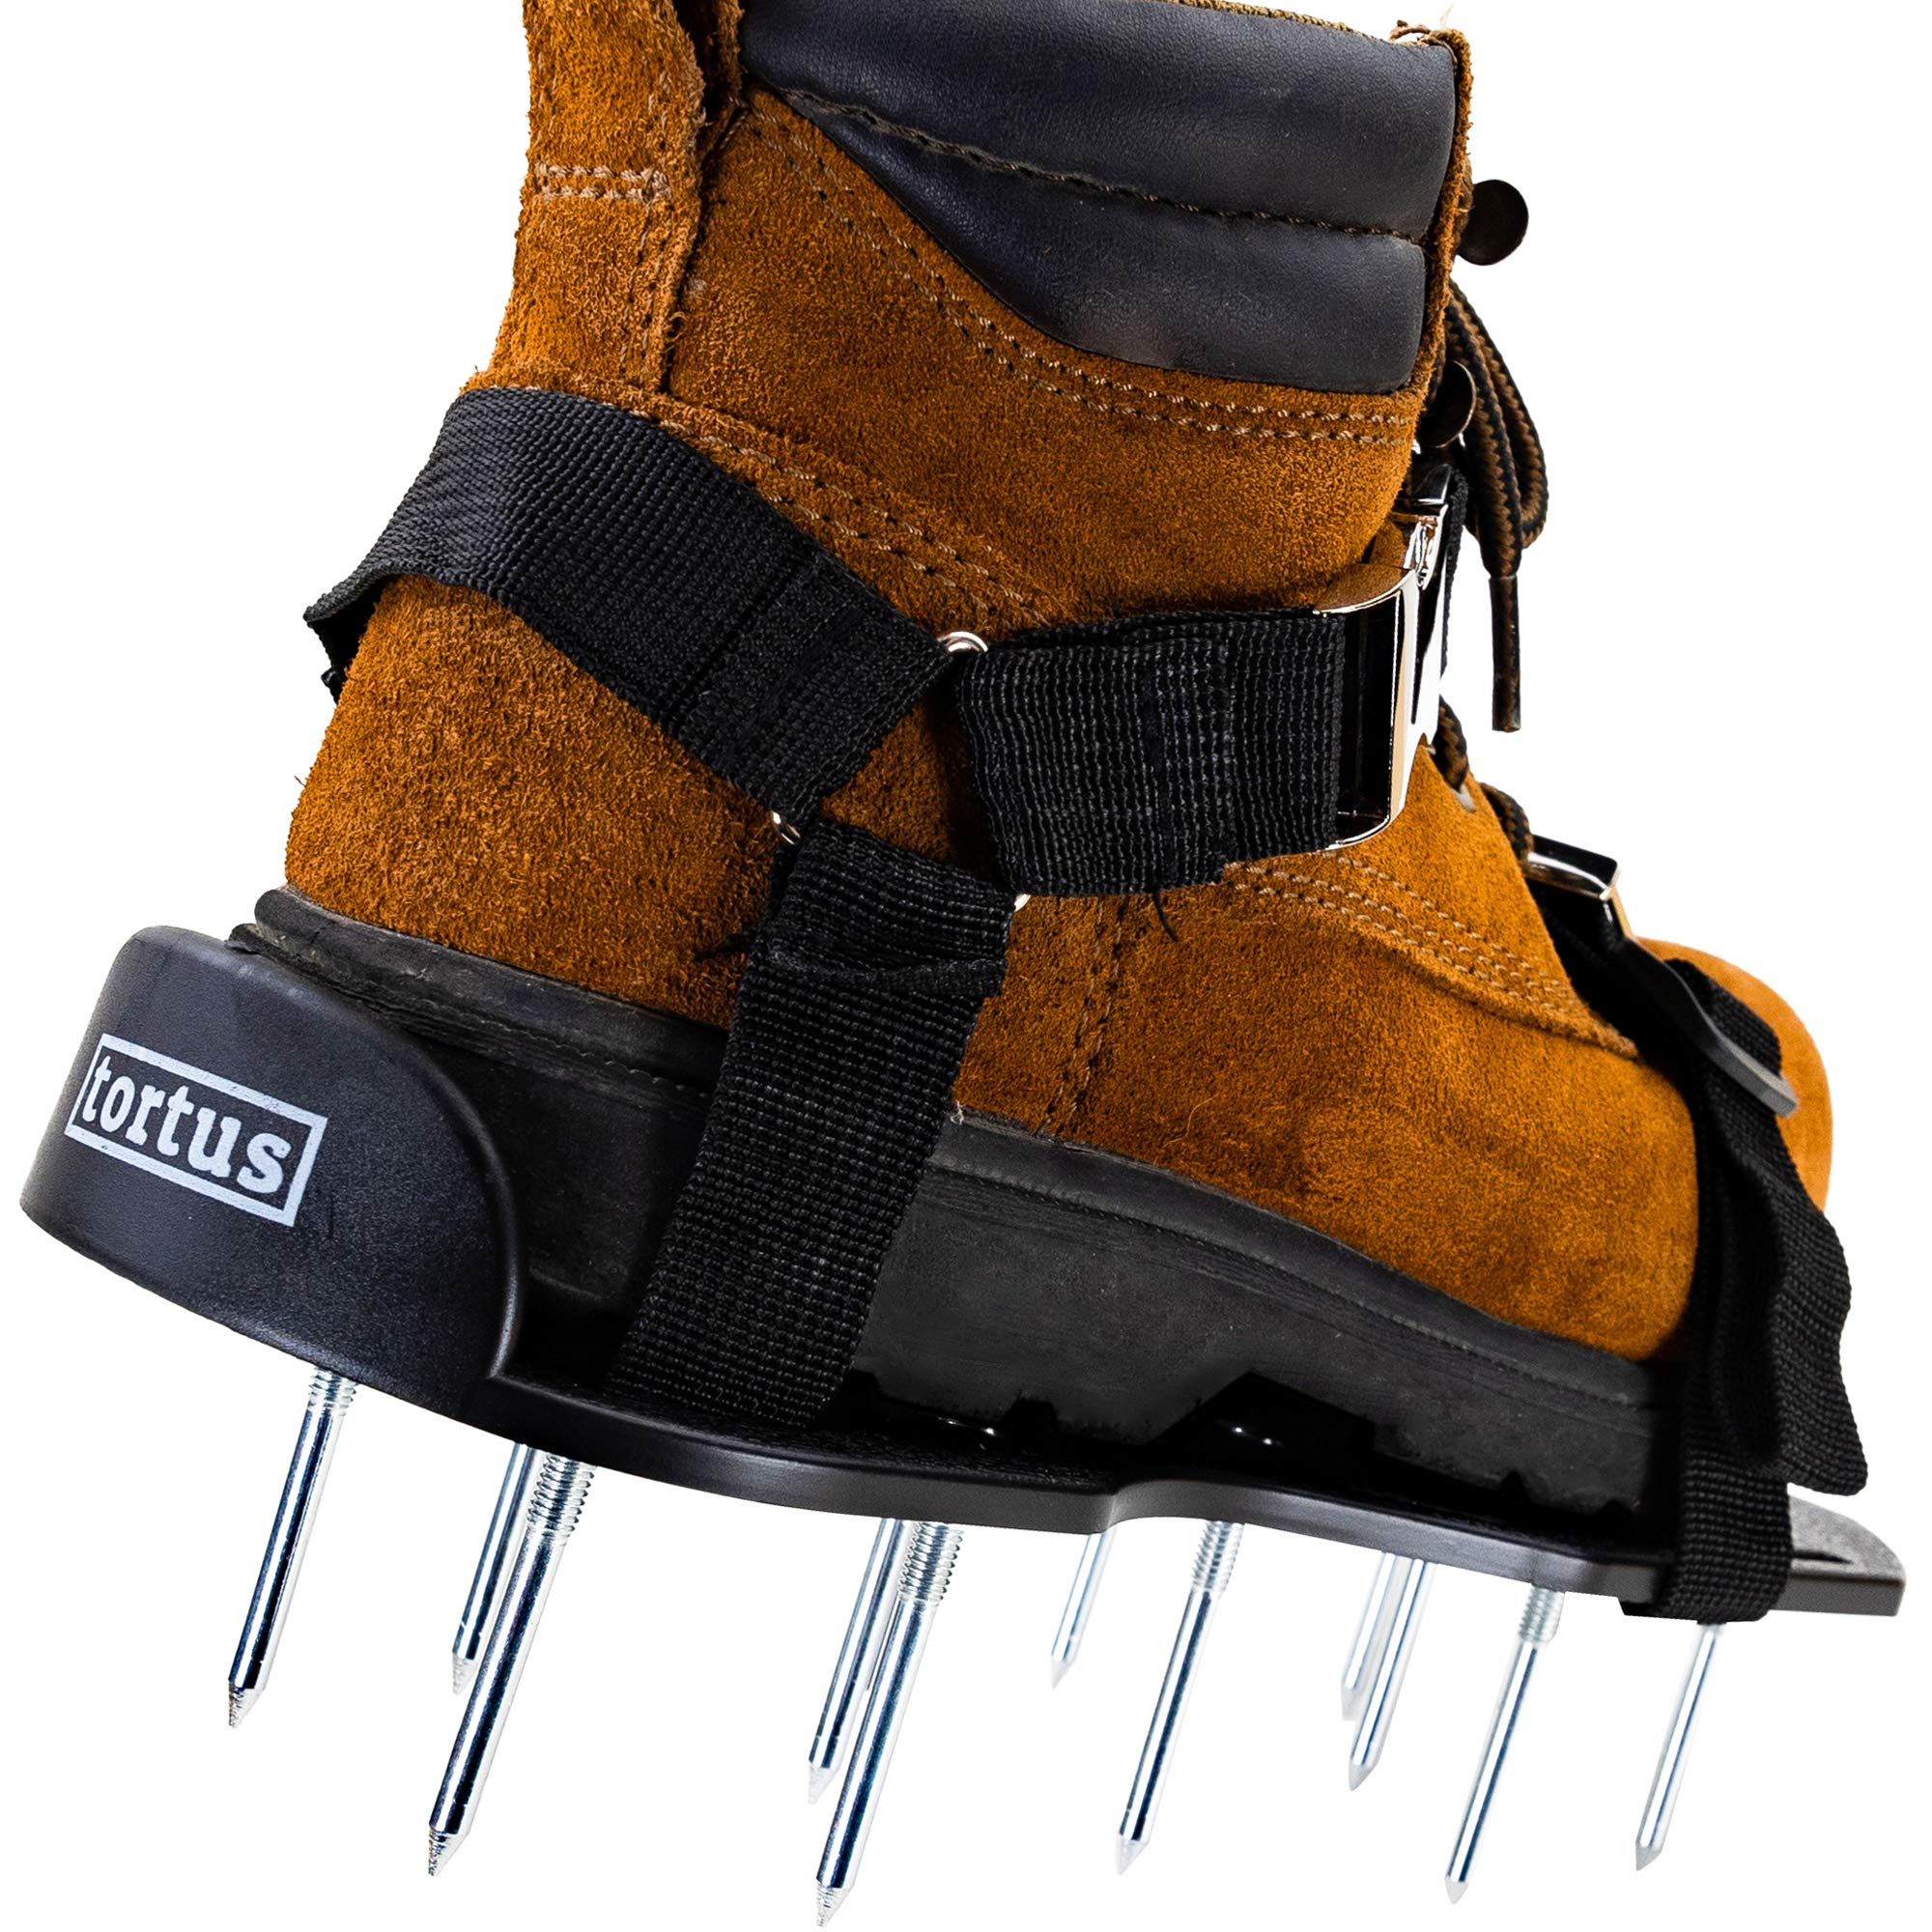 Tortus Lawn Aerator Shoes With 2.5 Inch Spikes - Aerating Spike Shoes For Lawns - Smart Strapping System - Longer Nails - Replacement Parts - Aerate Lawn, Soil & Grass - Secure Unisex Aeration Tools by tortus